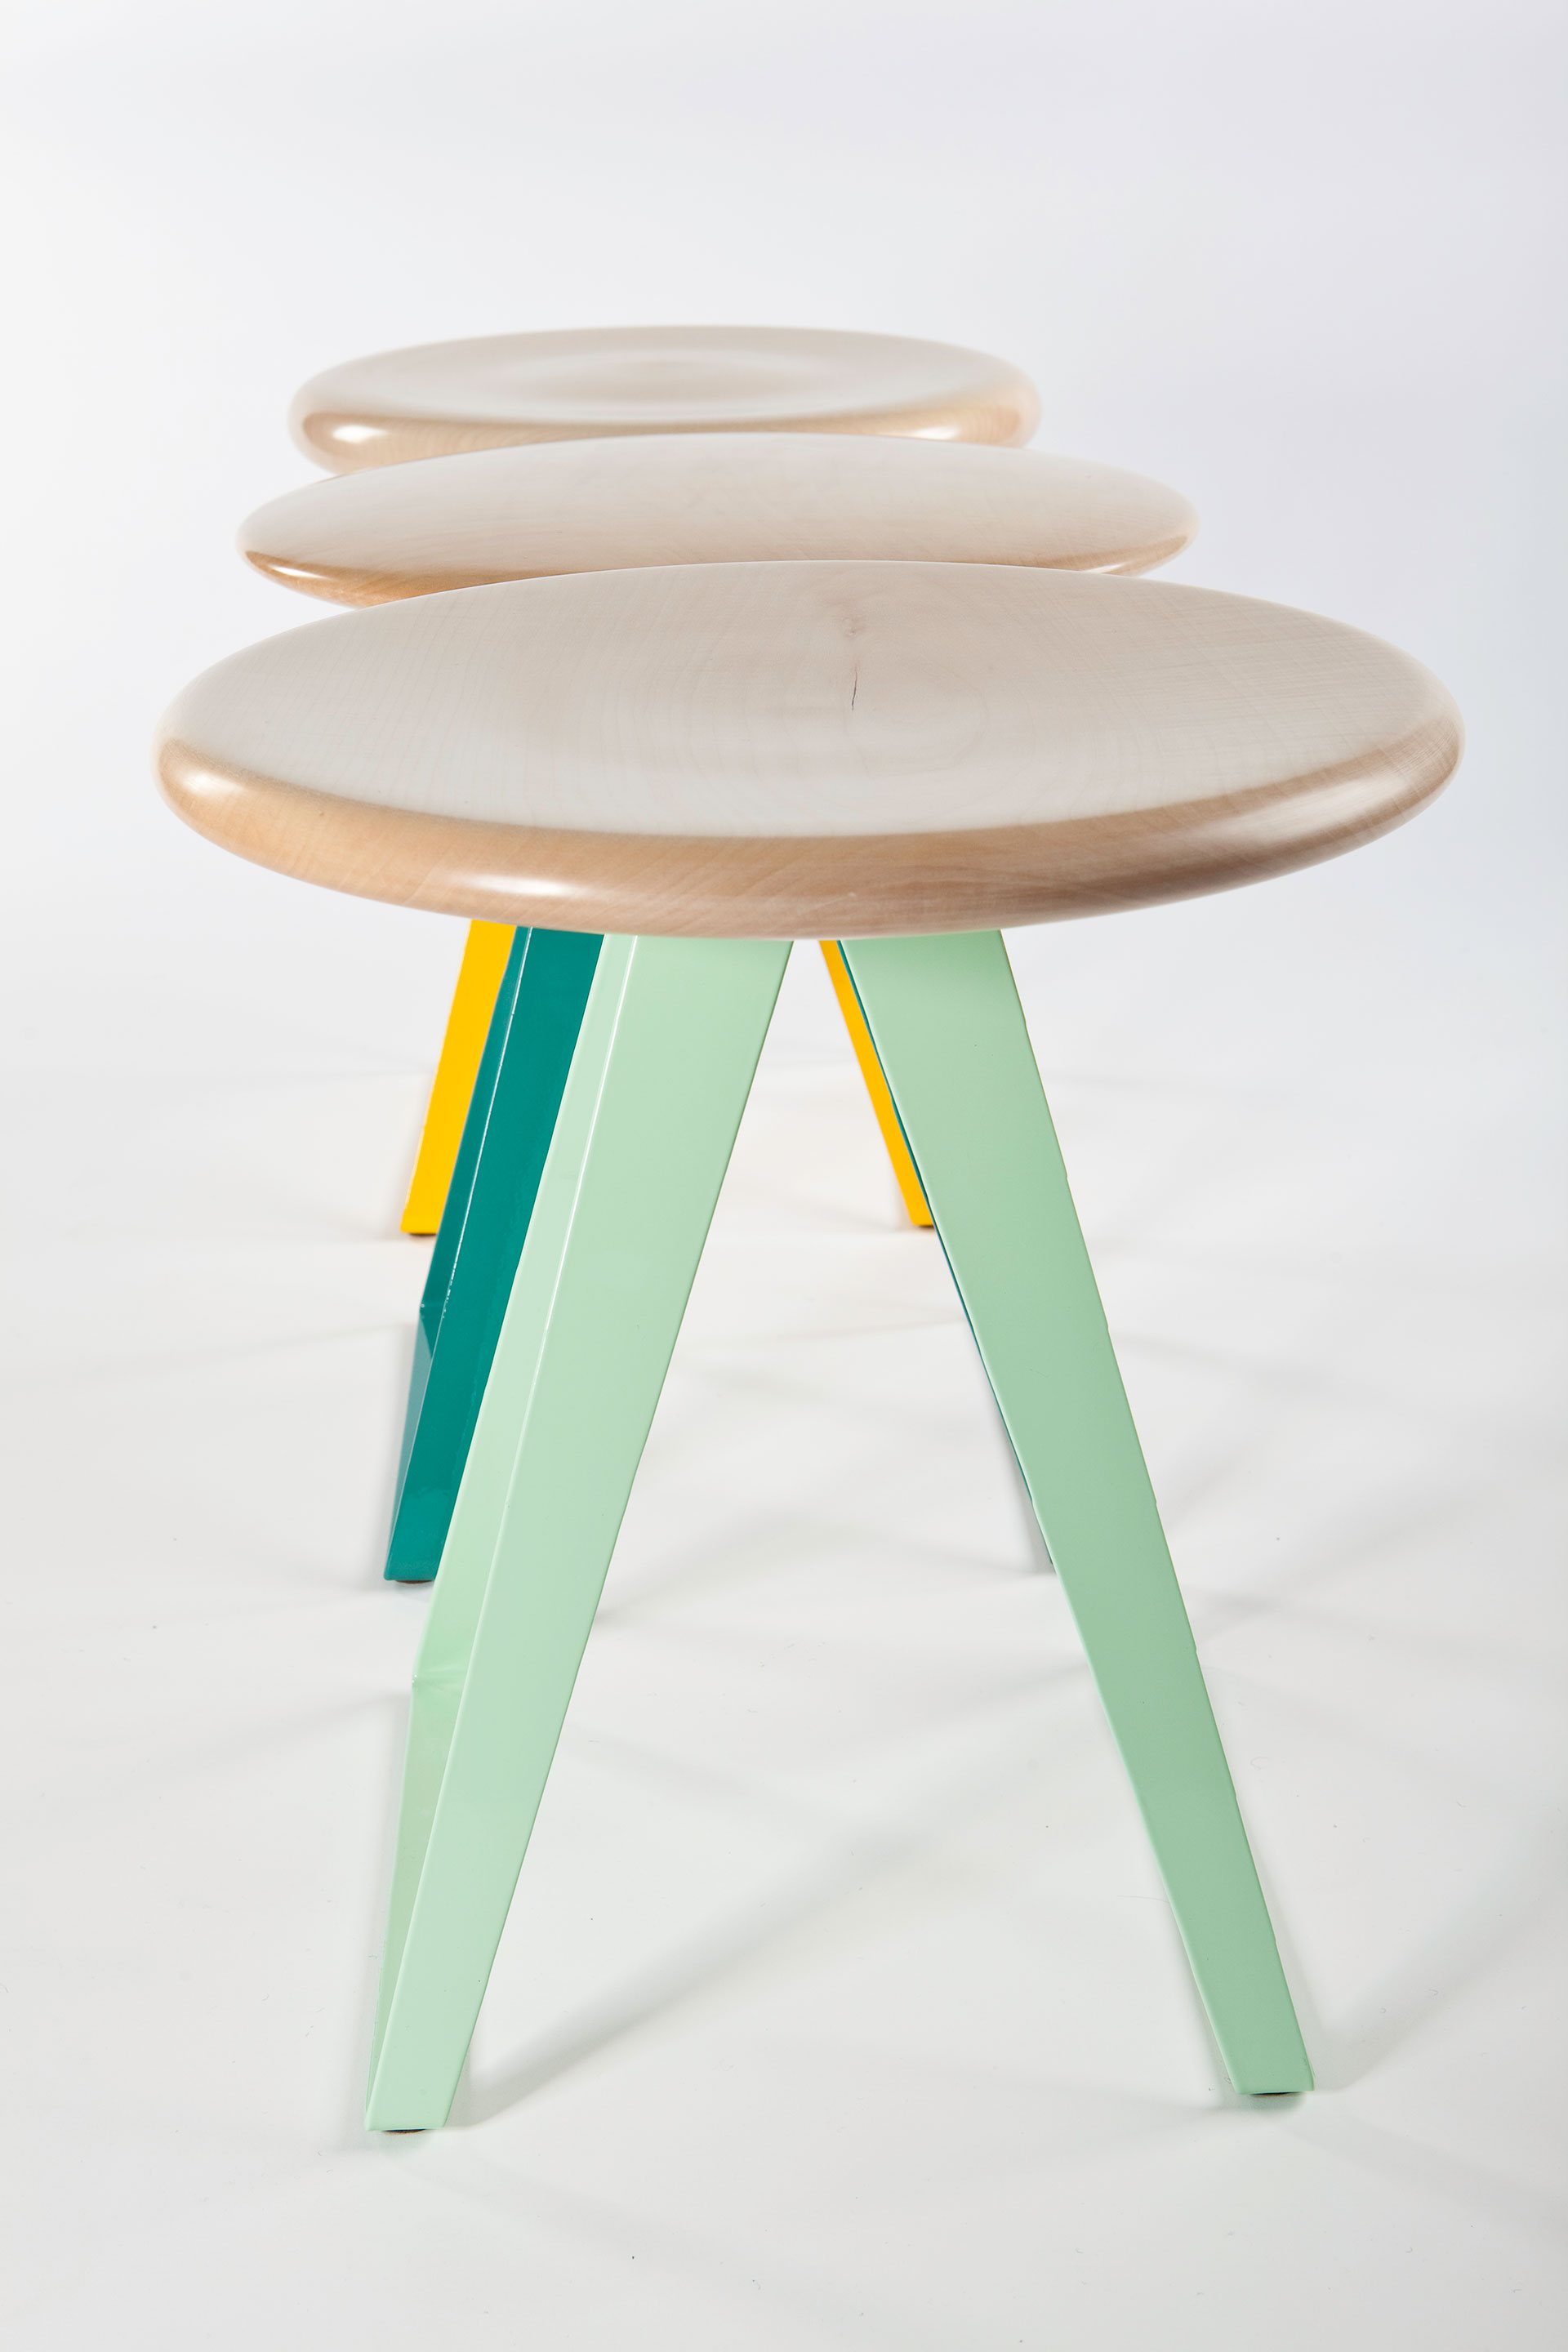 Handcrafted stool made of solid sycamore